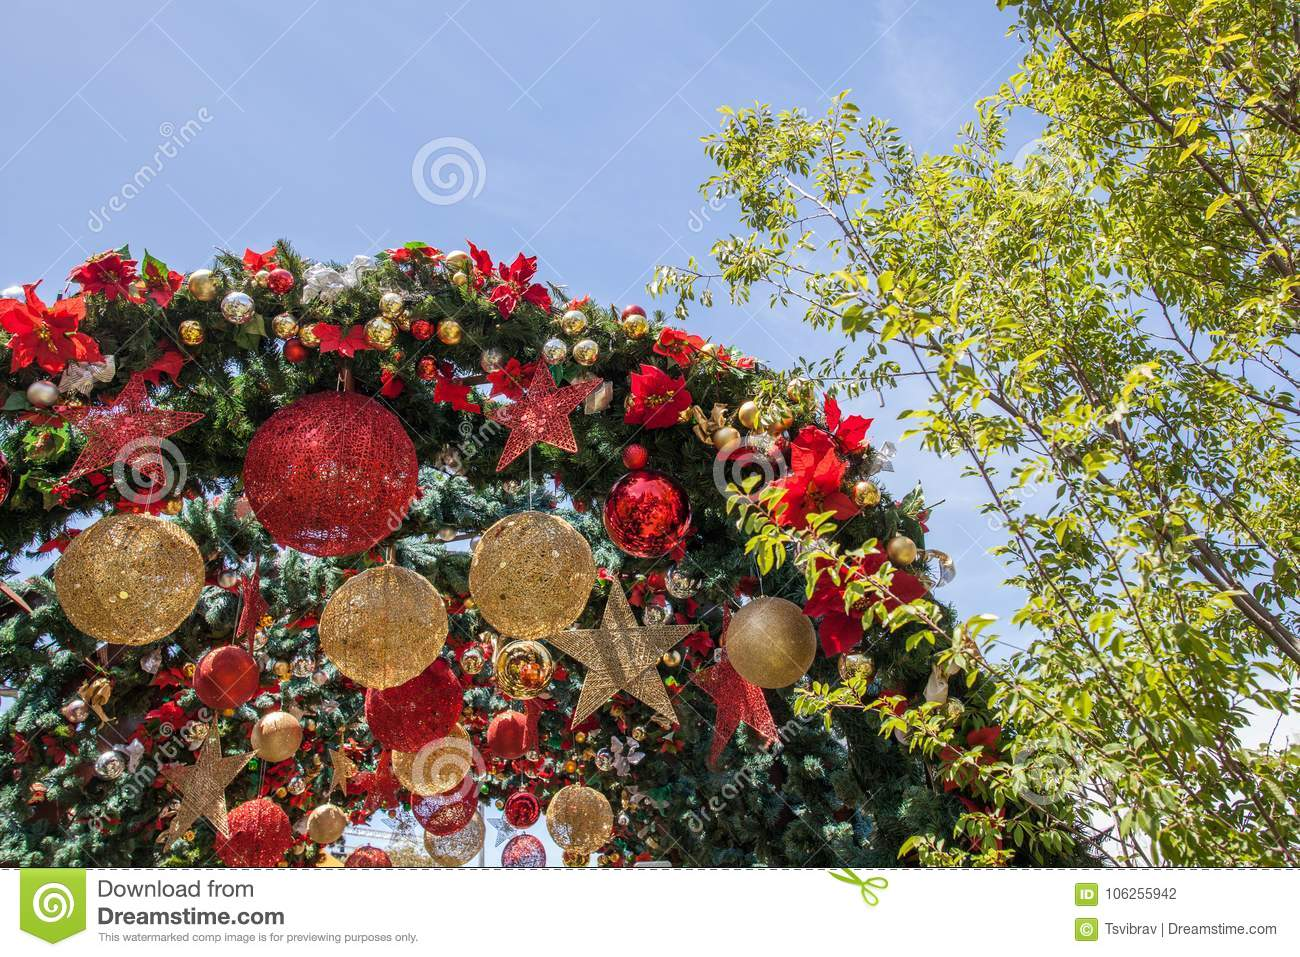 download melbourne australia december 16 2017 christmas decorations at federation square